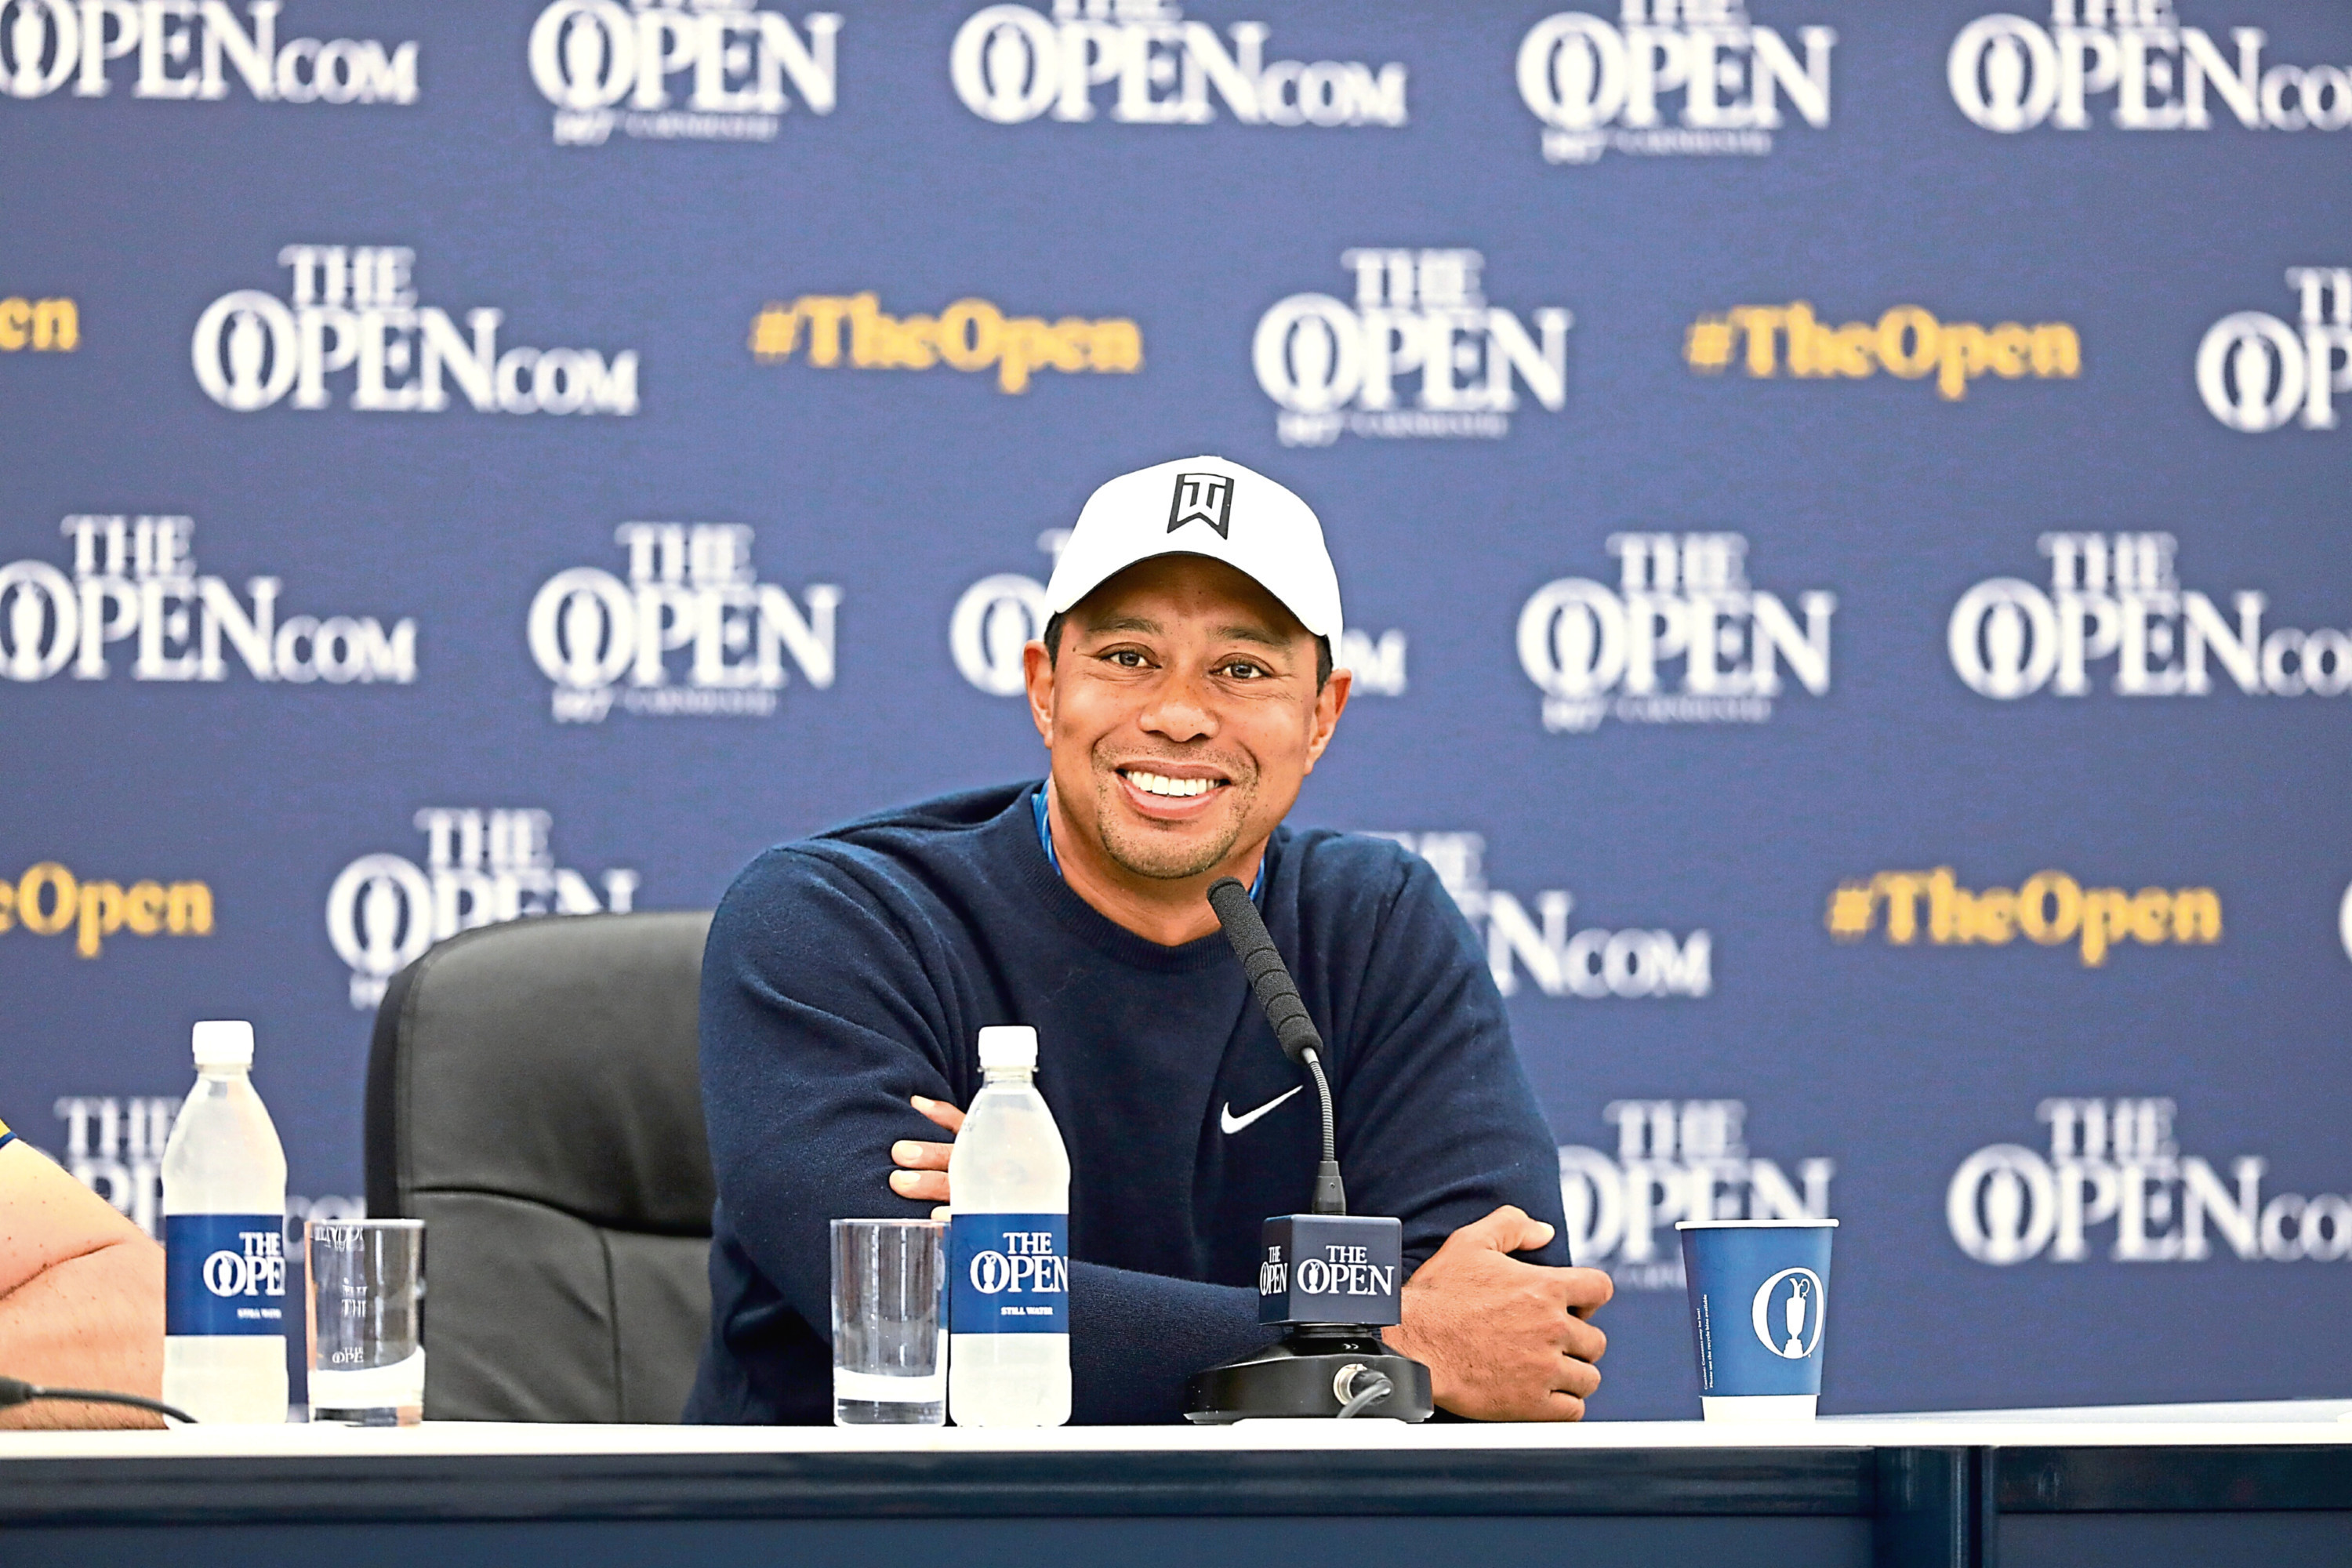 Tiger Woods at a press conference ahead of The Open